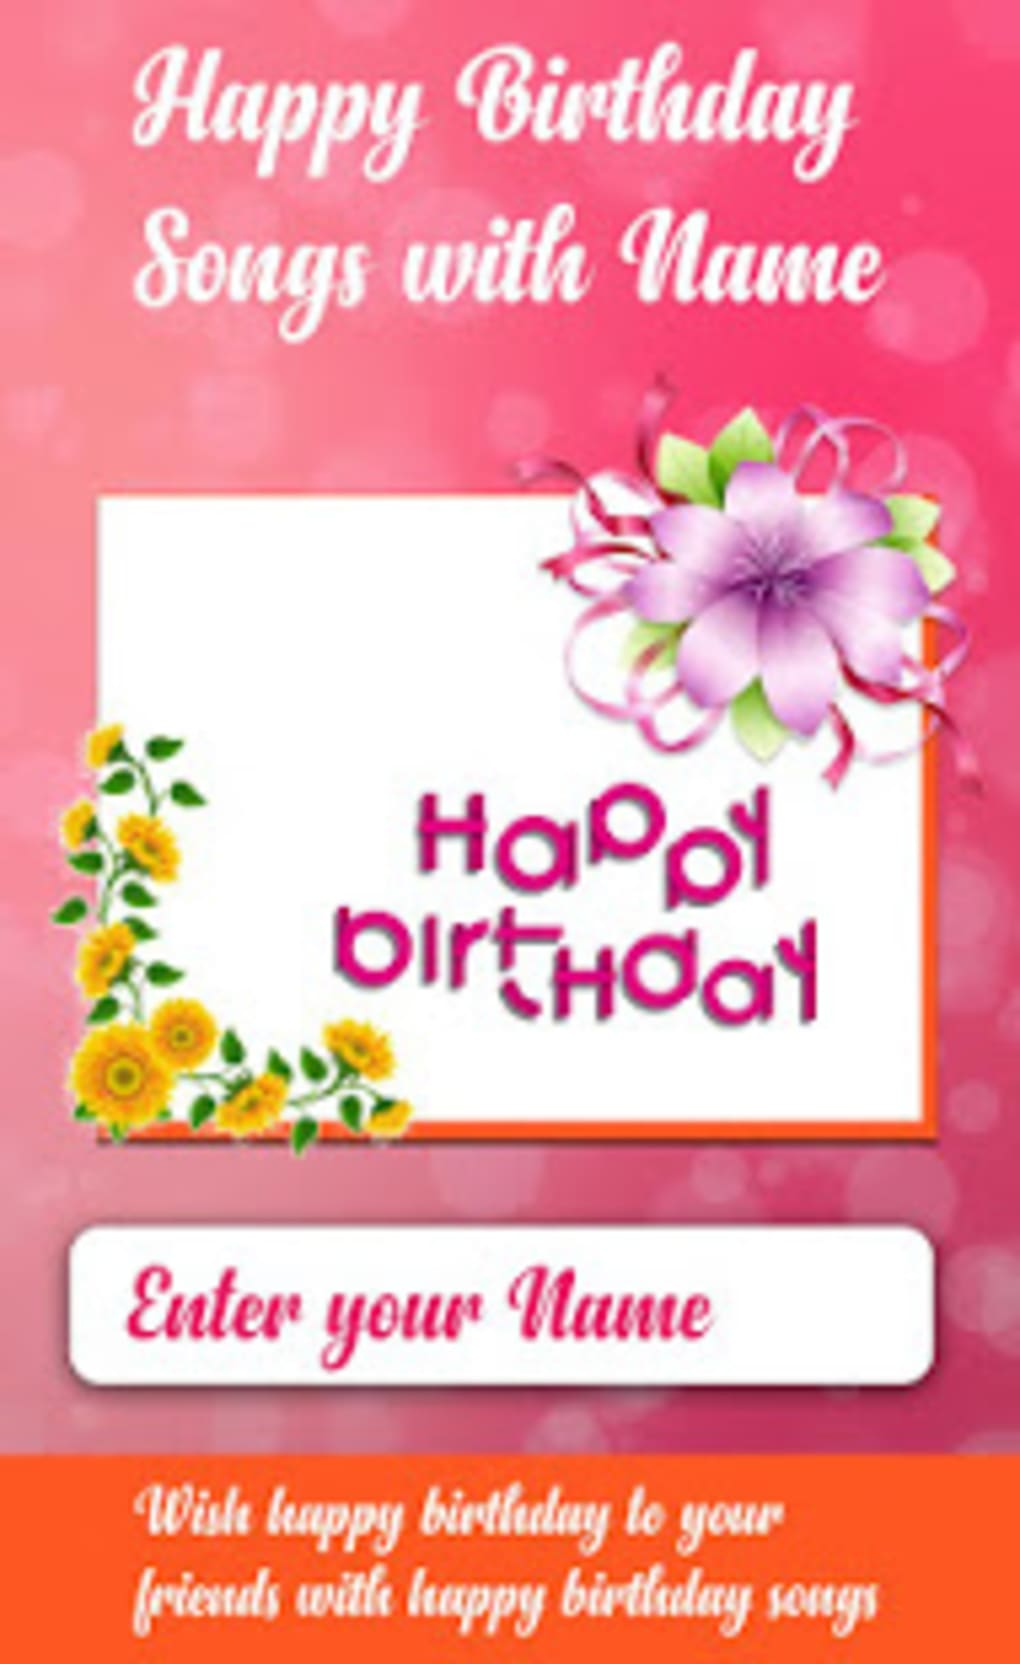 birthday video song download in hd